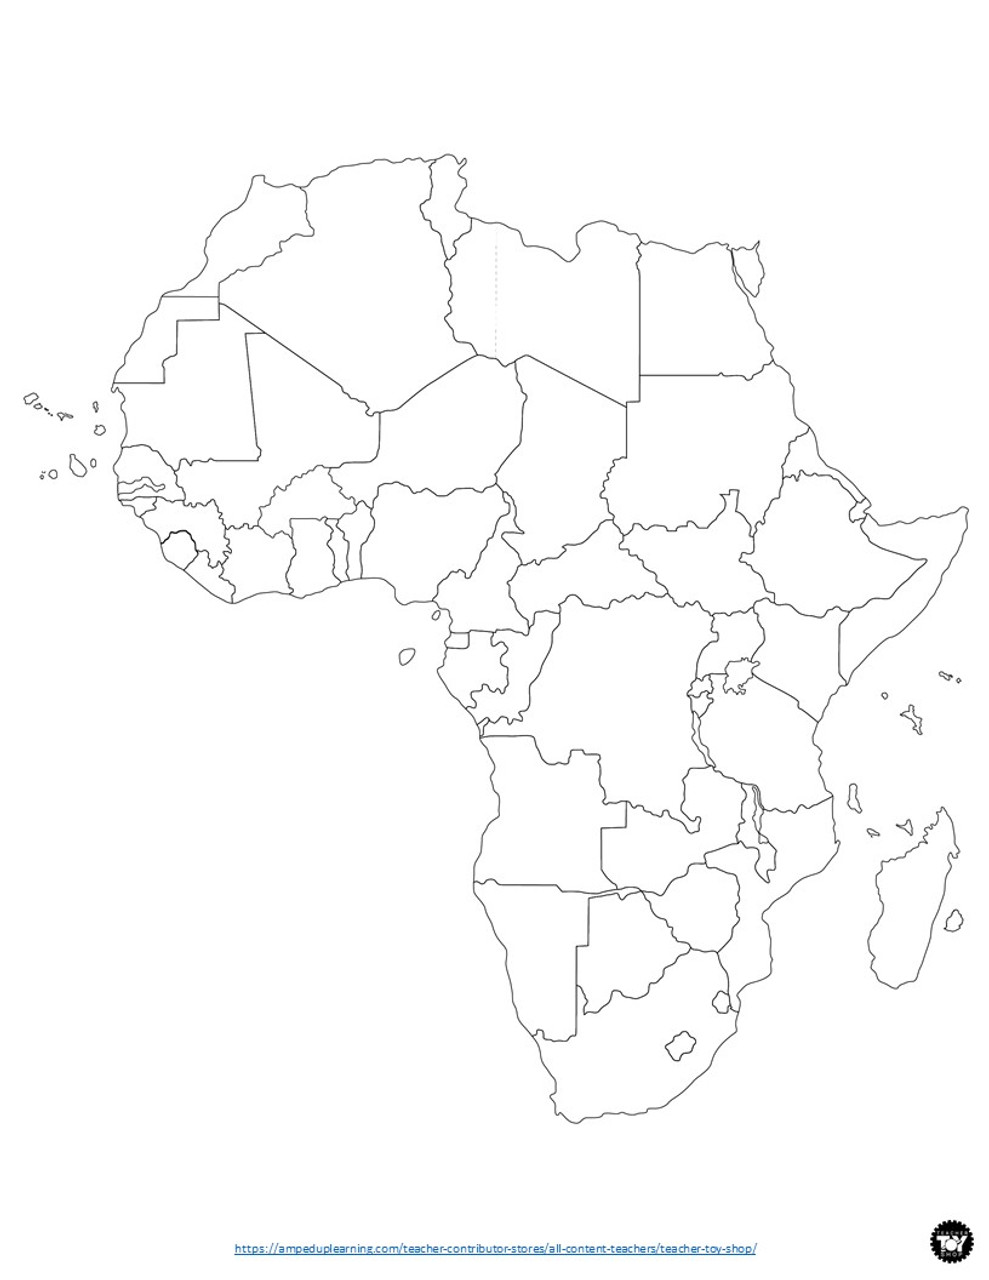 Africa Geography Activity | Make a Map! Interactive Bulletin Board Project